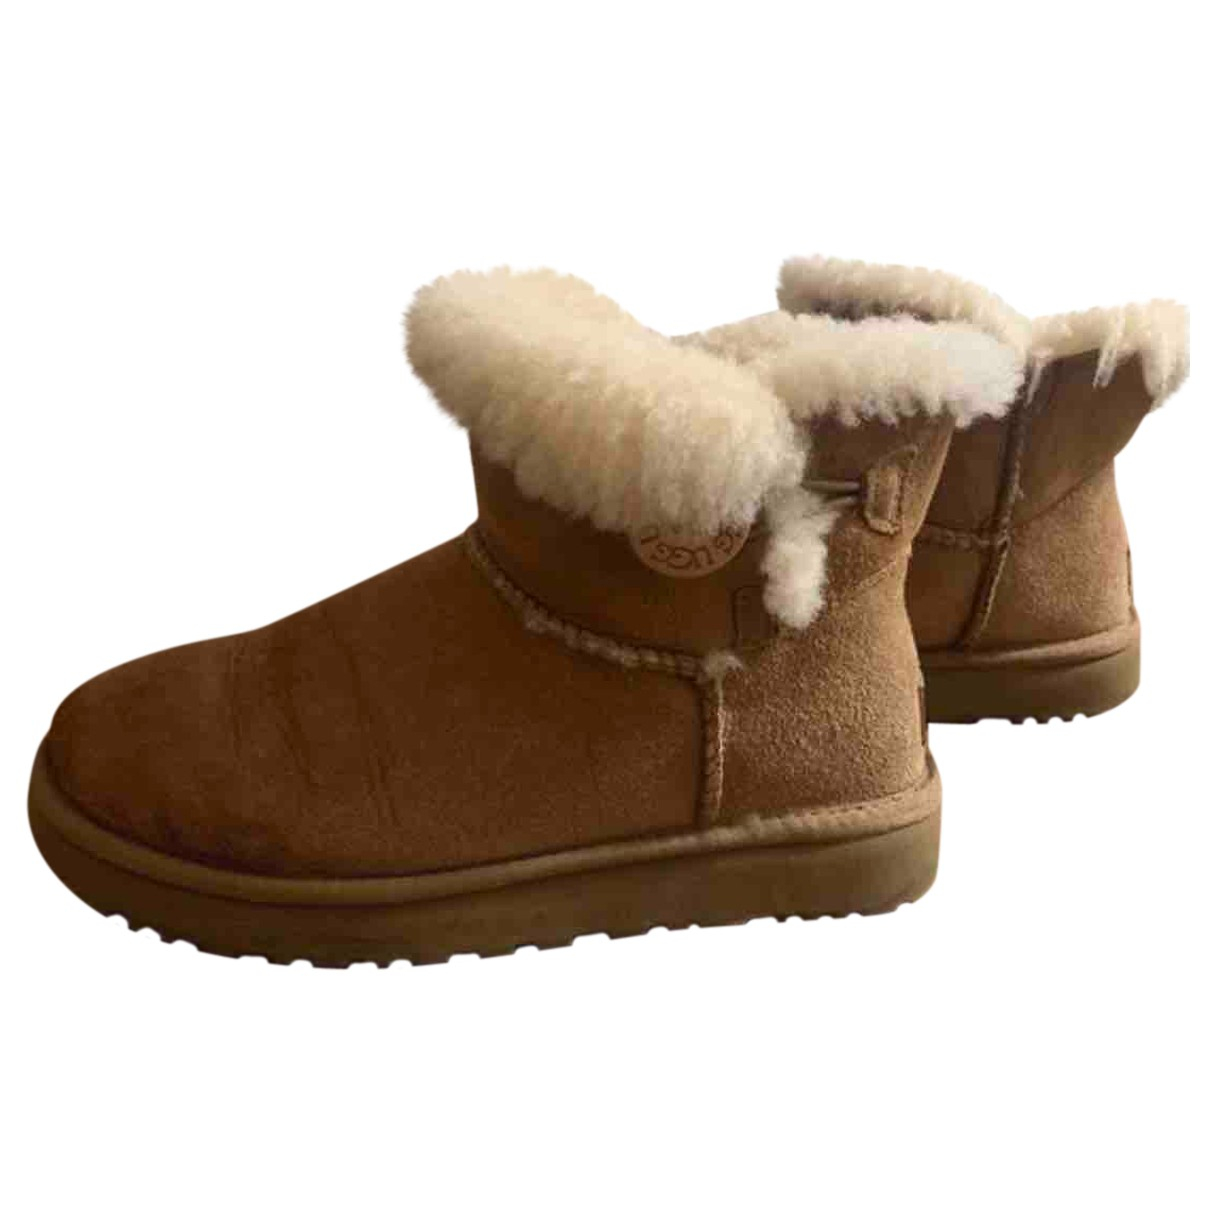 Ugg N Beige Shearling Ankle boots for Women 37 EU